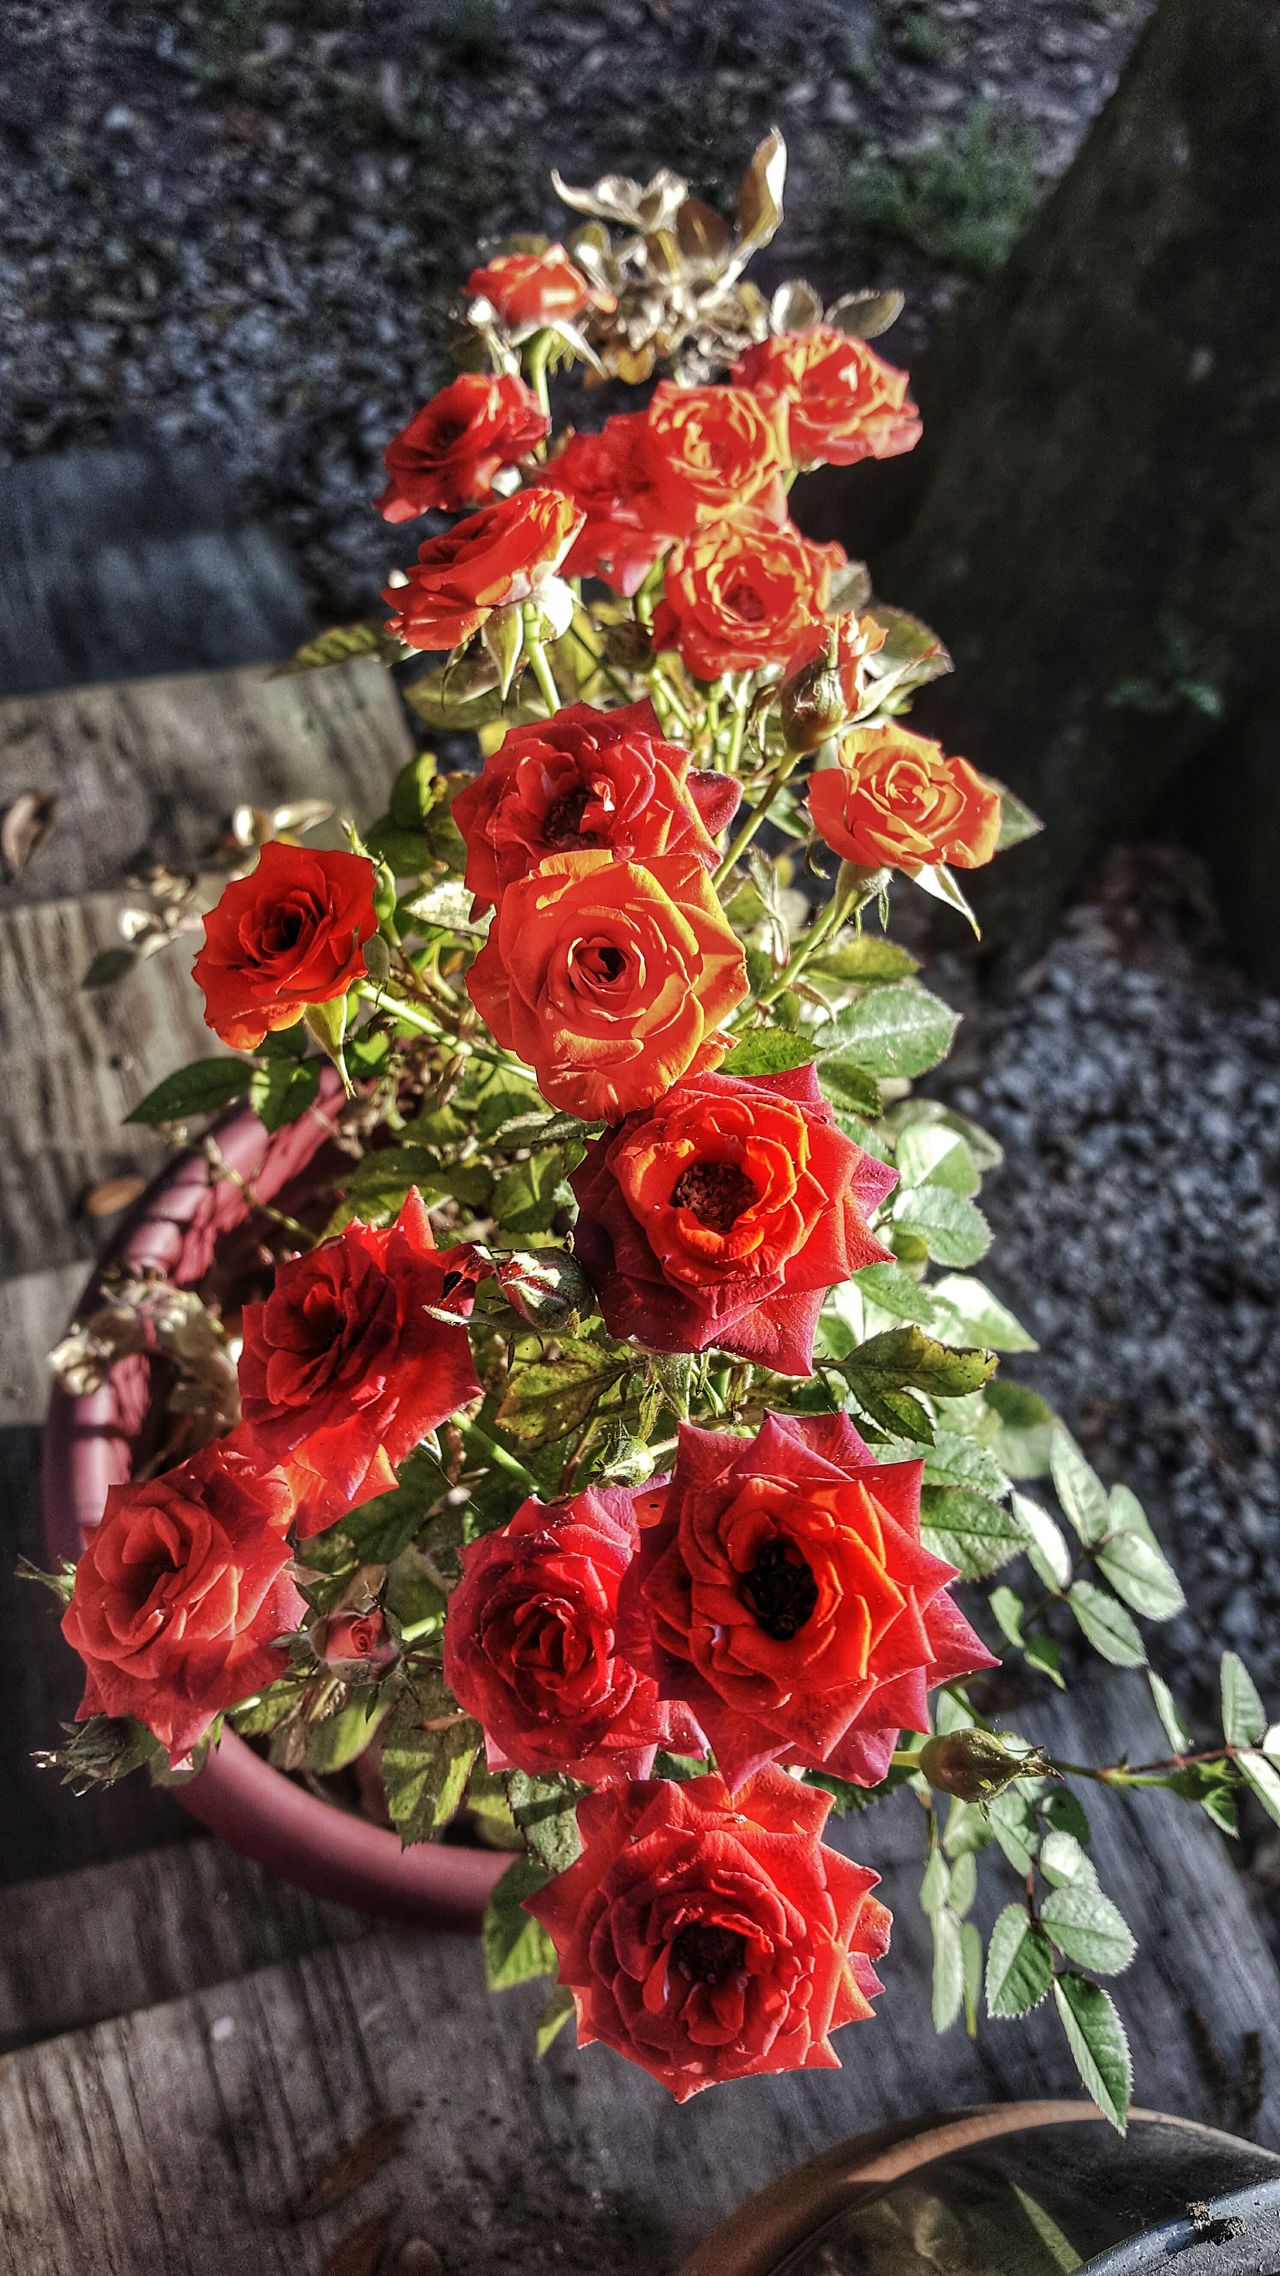 My little rose plant is happy this year Red Freshness No People Nature Close-up Beauty In Nature Flower Outdoors Day South Louisiana Roses Flowers  Mini Roses Red Blossoms  Contrast Treebark